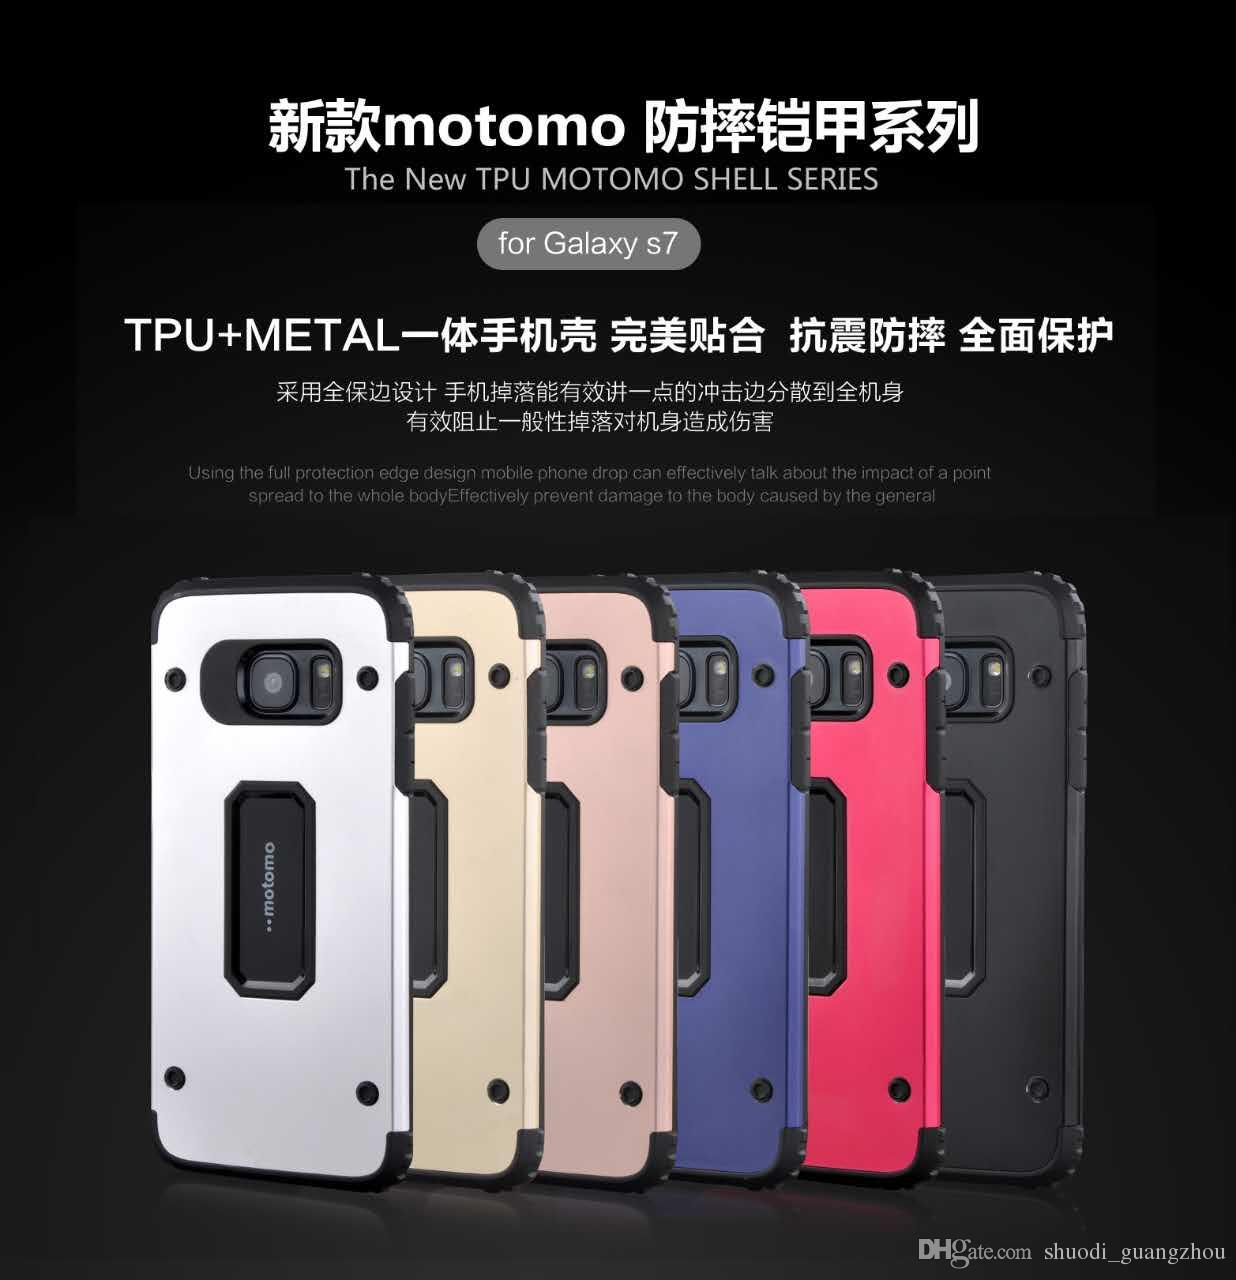 Hot Sale Motomo Phone Case Metal TPU Hard Back Shockproof Covers Case For Samsung Galaxy S8 S8 plus S7 S7 edge j3 J5 J7 2017